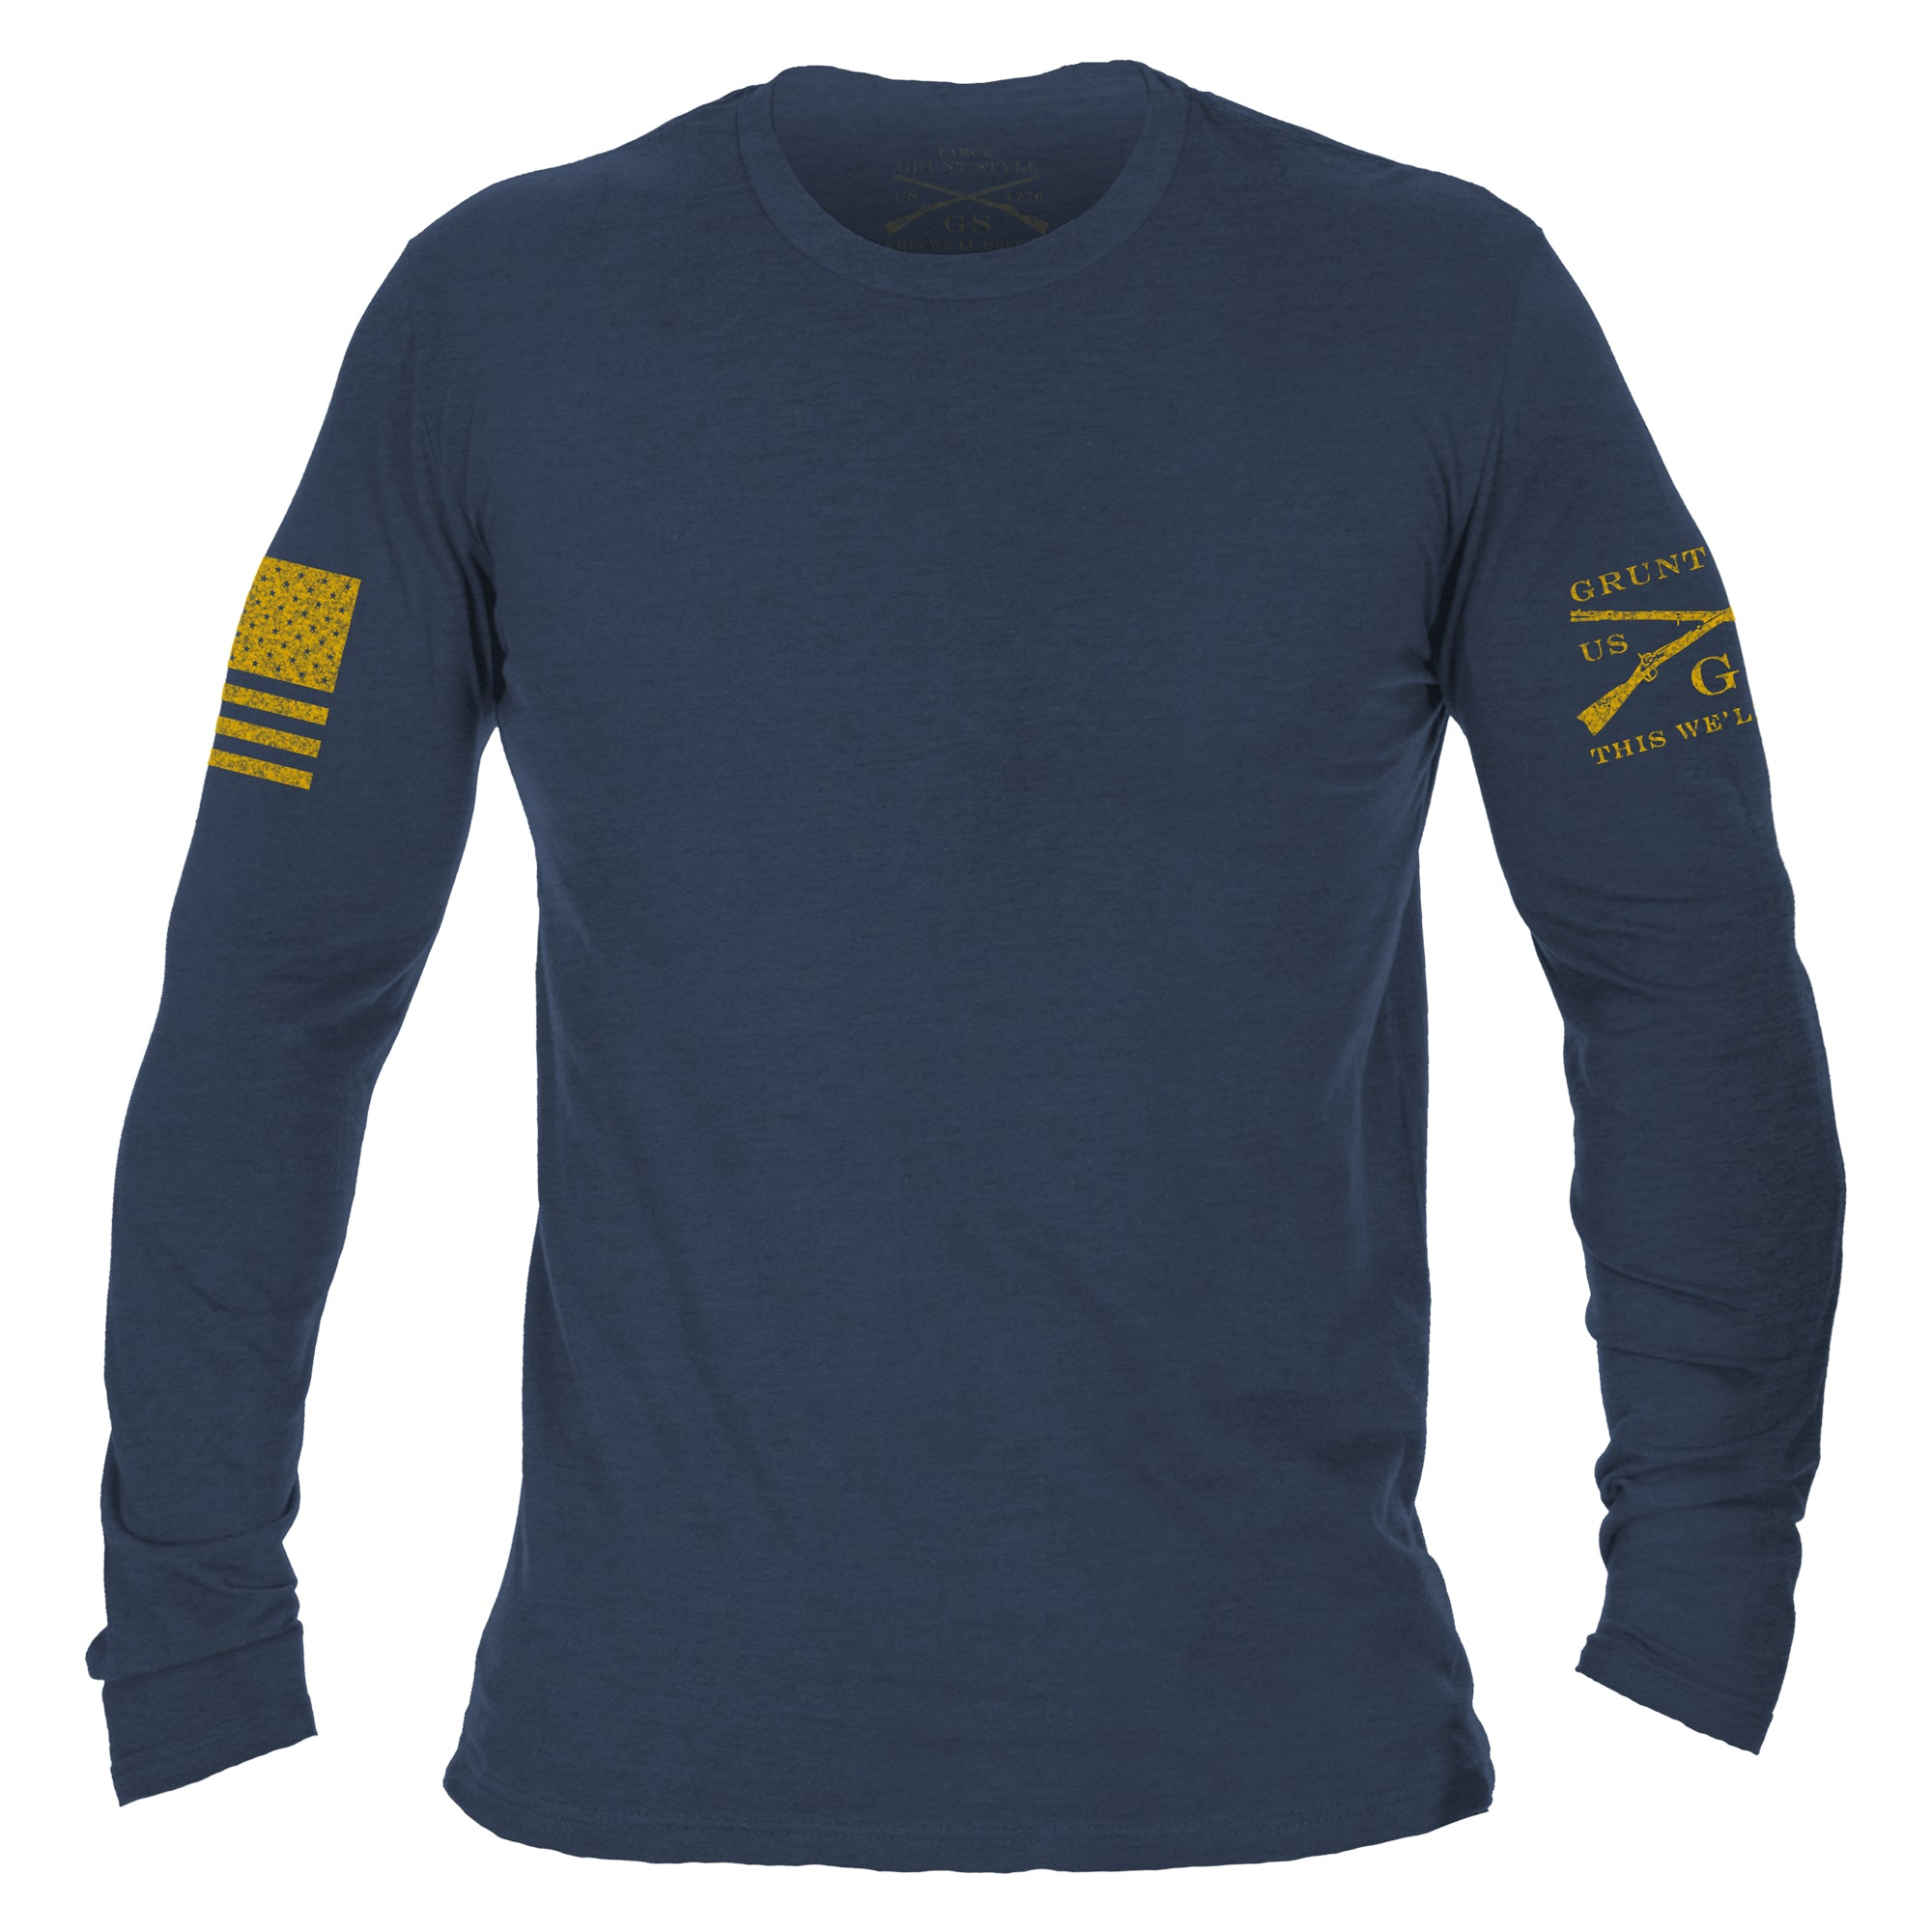 Basic Long Sleeve - Heather Navy